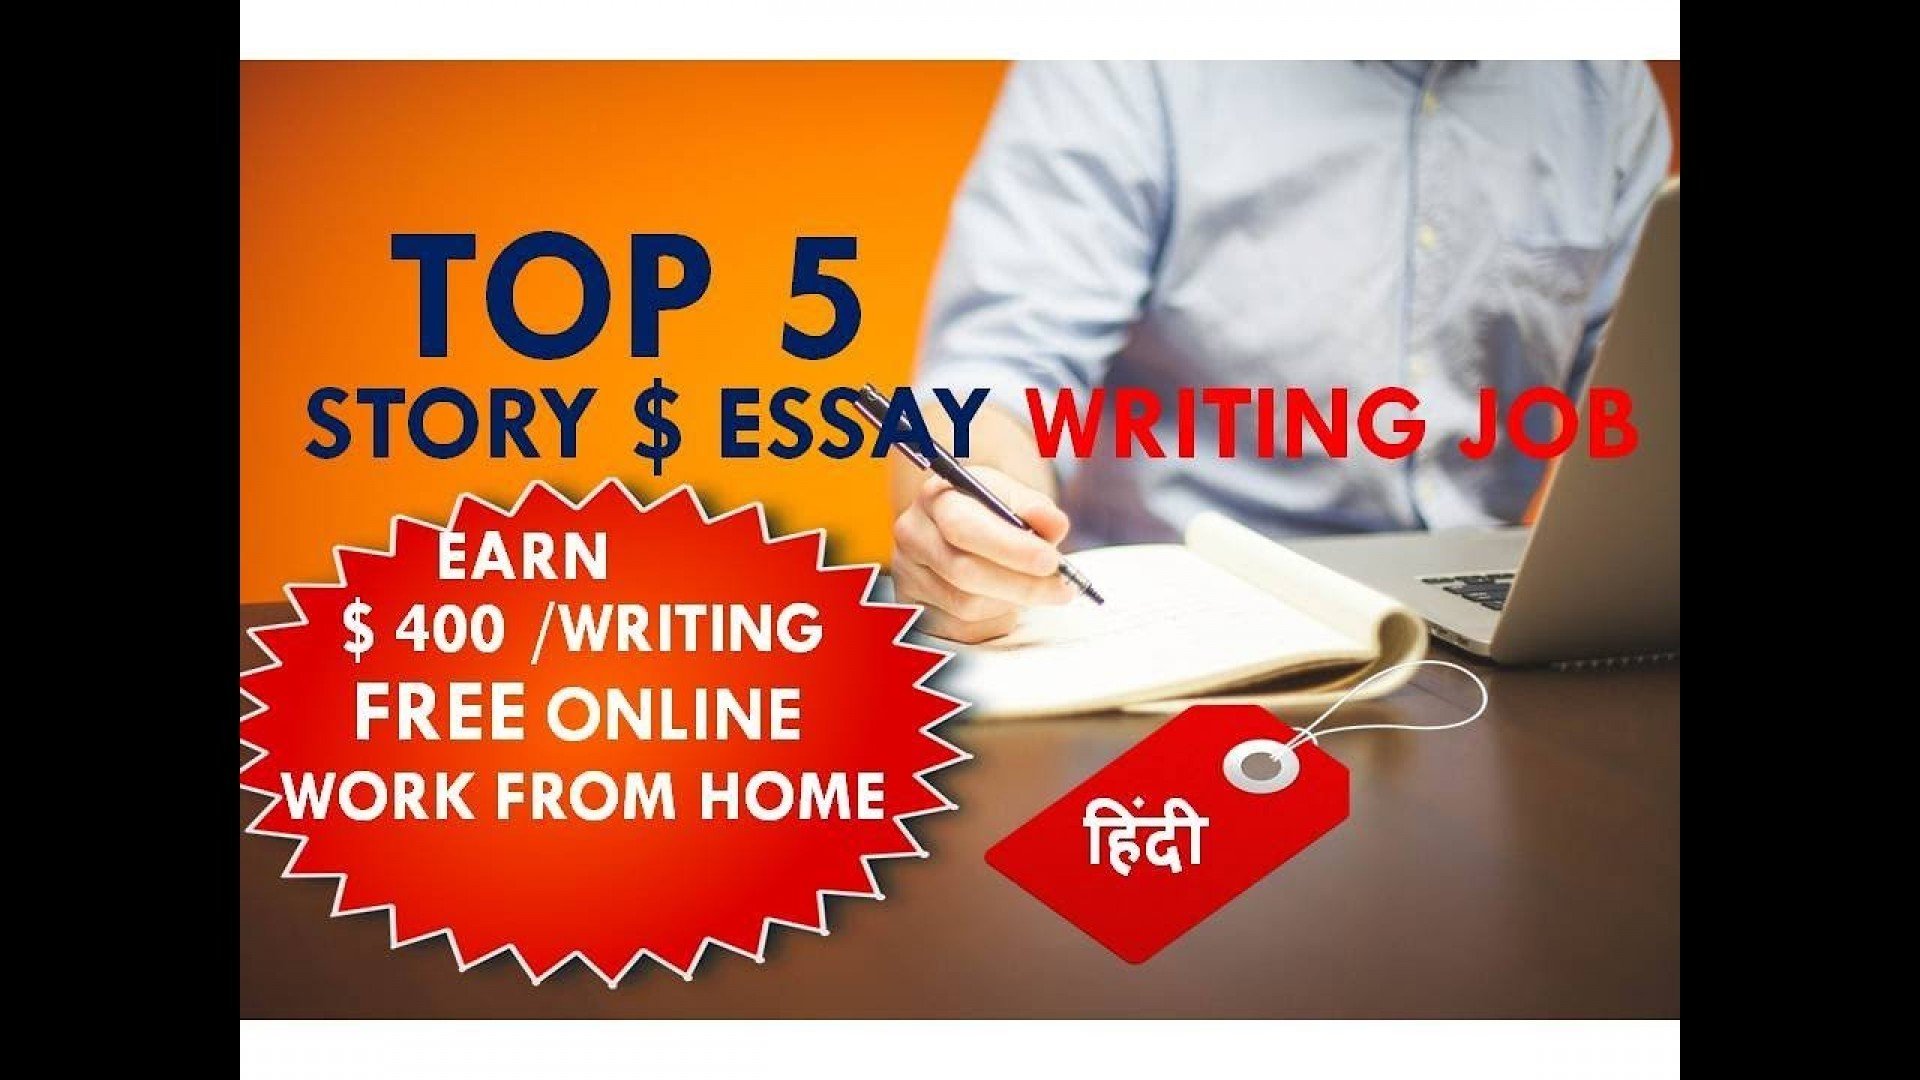 024 Essay Writing Jobs Example Archaicawful Uk In Kenya 1920